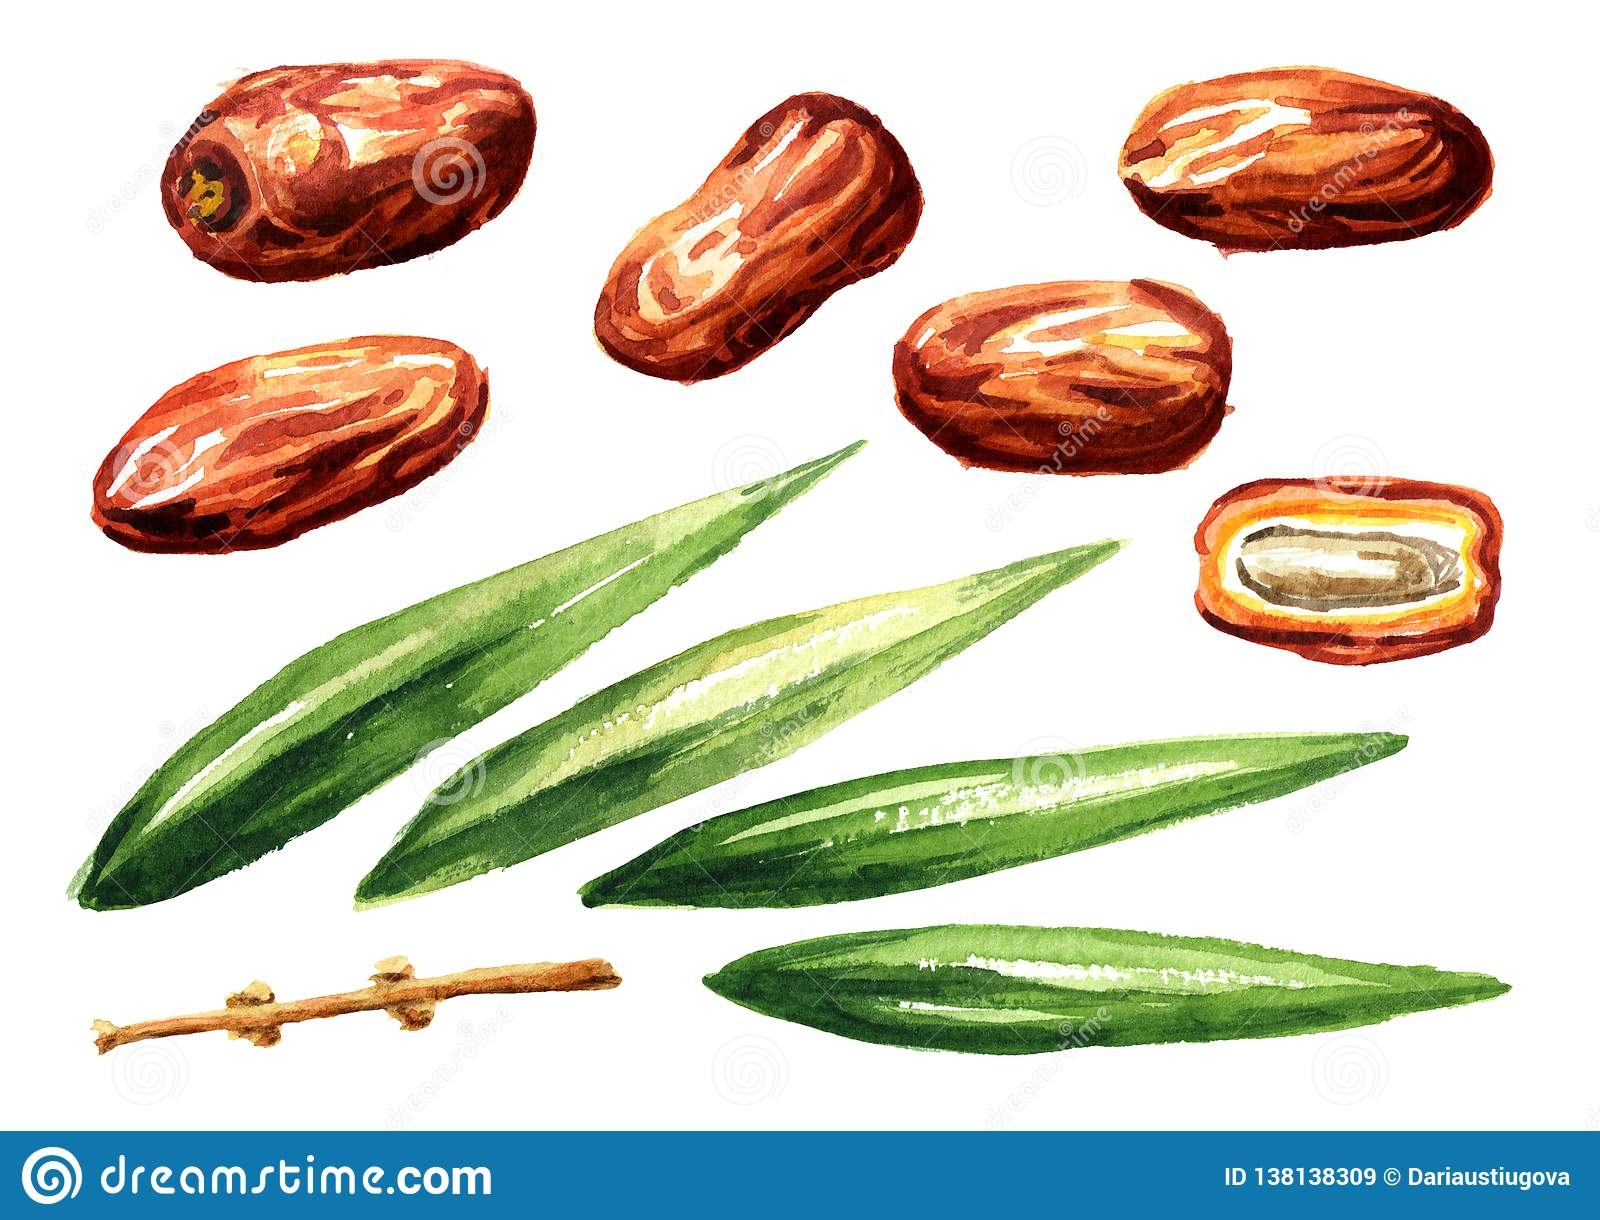 Dried date fruits and leaves elements set. Watercolor hand drawn illustration, isolated on white background